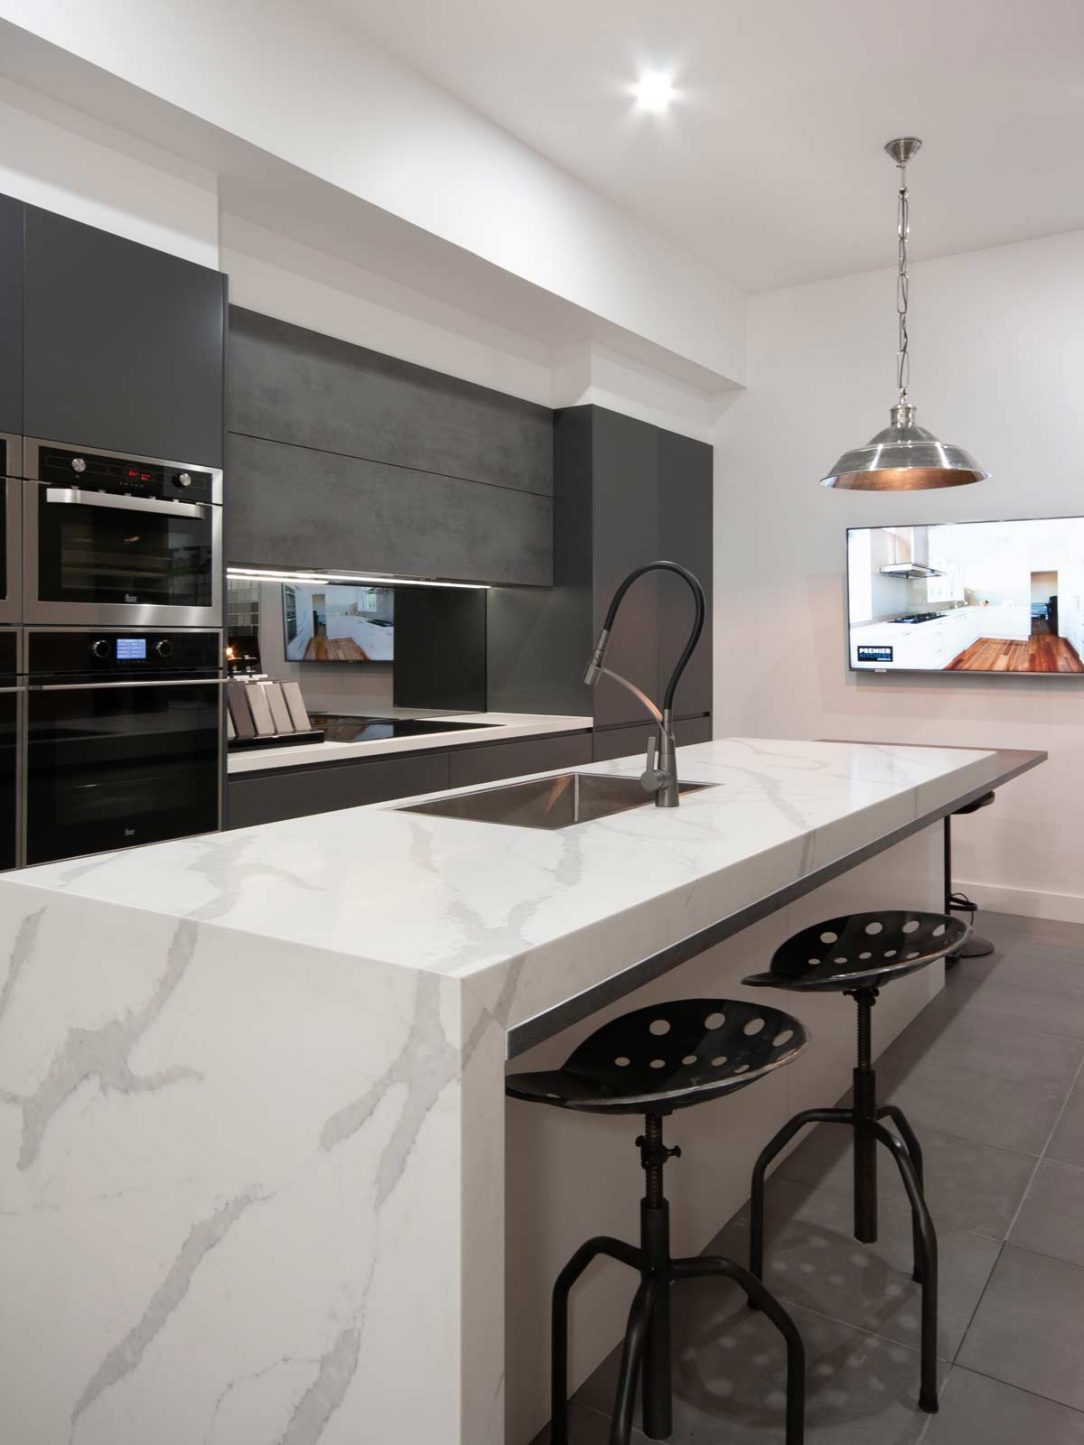 Contemporary kitchen design featuring Smartstone benchtop, on display at Premier Kitchens Drummoyne